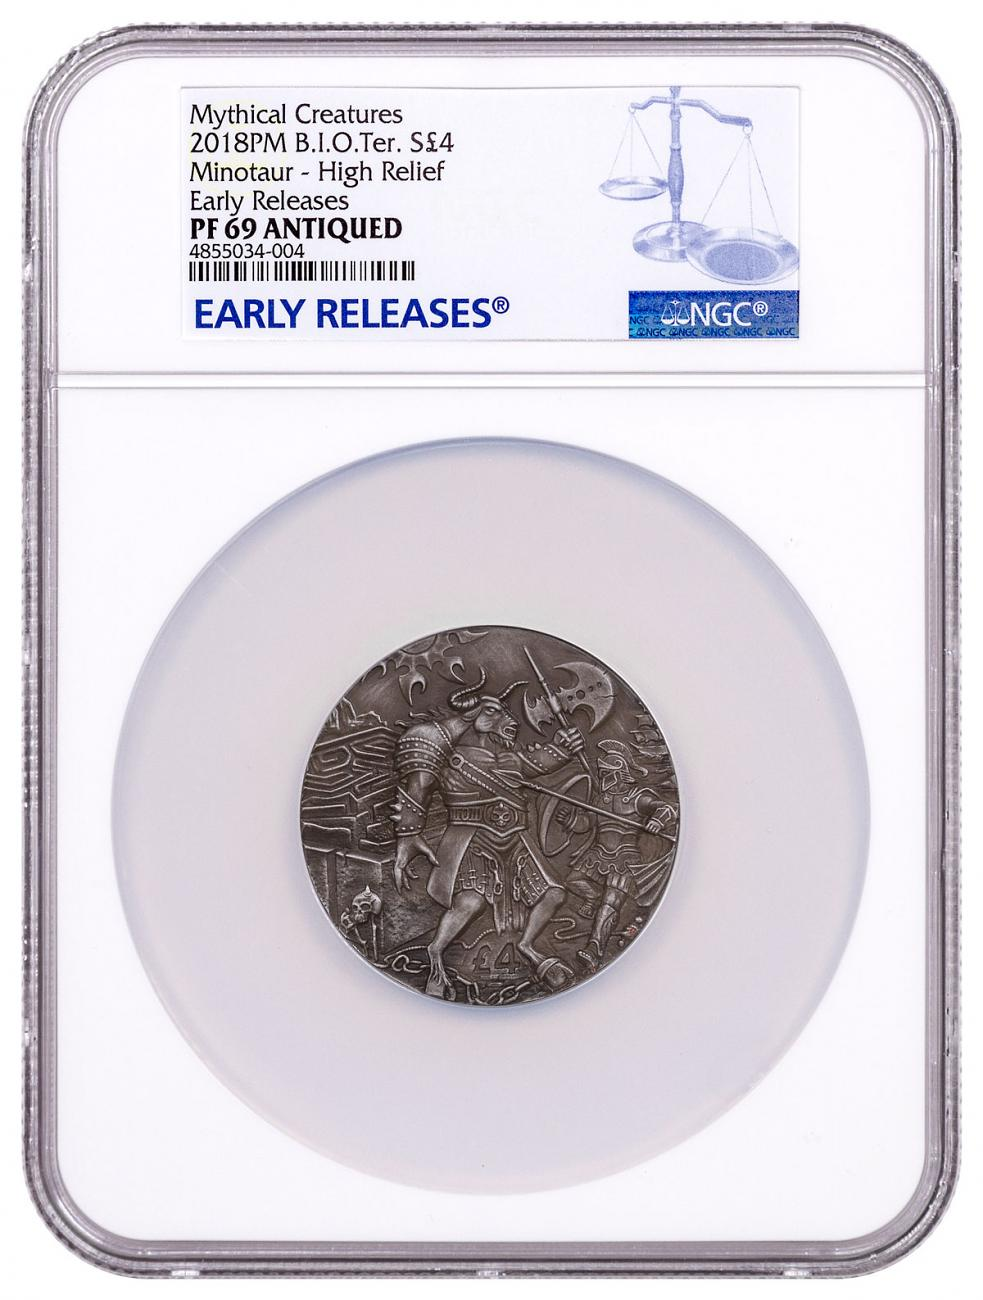 2018 British Indian Ocean Territory Mythical Creatures - The Minotaur Ultra High Relief 2 oz Silver Antiqued Proof £4 Coin NGC PF69 ER